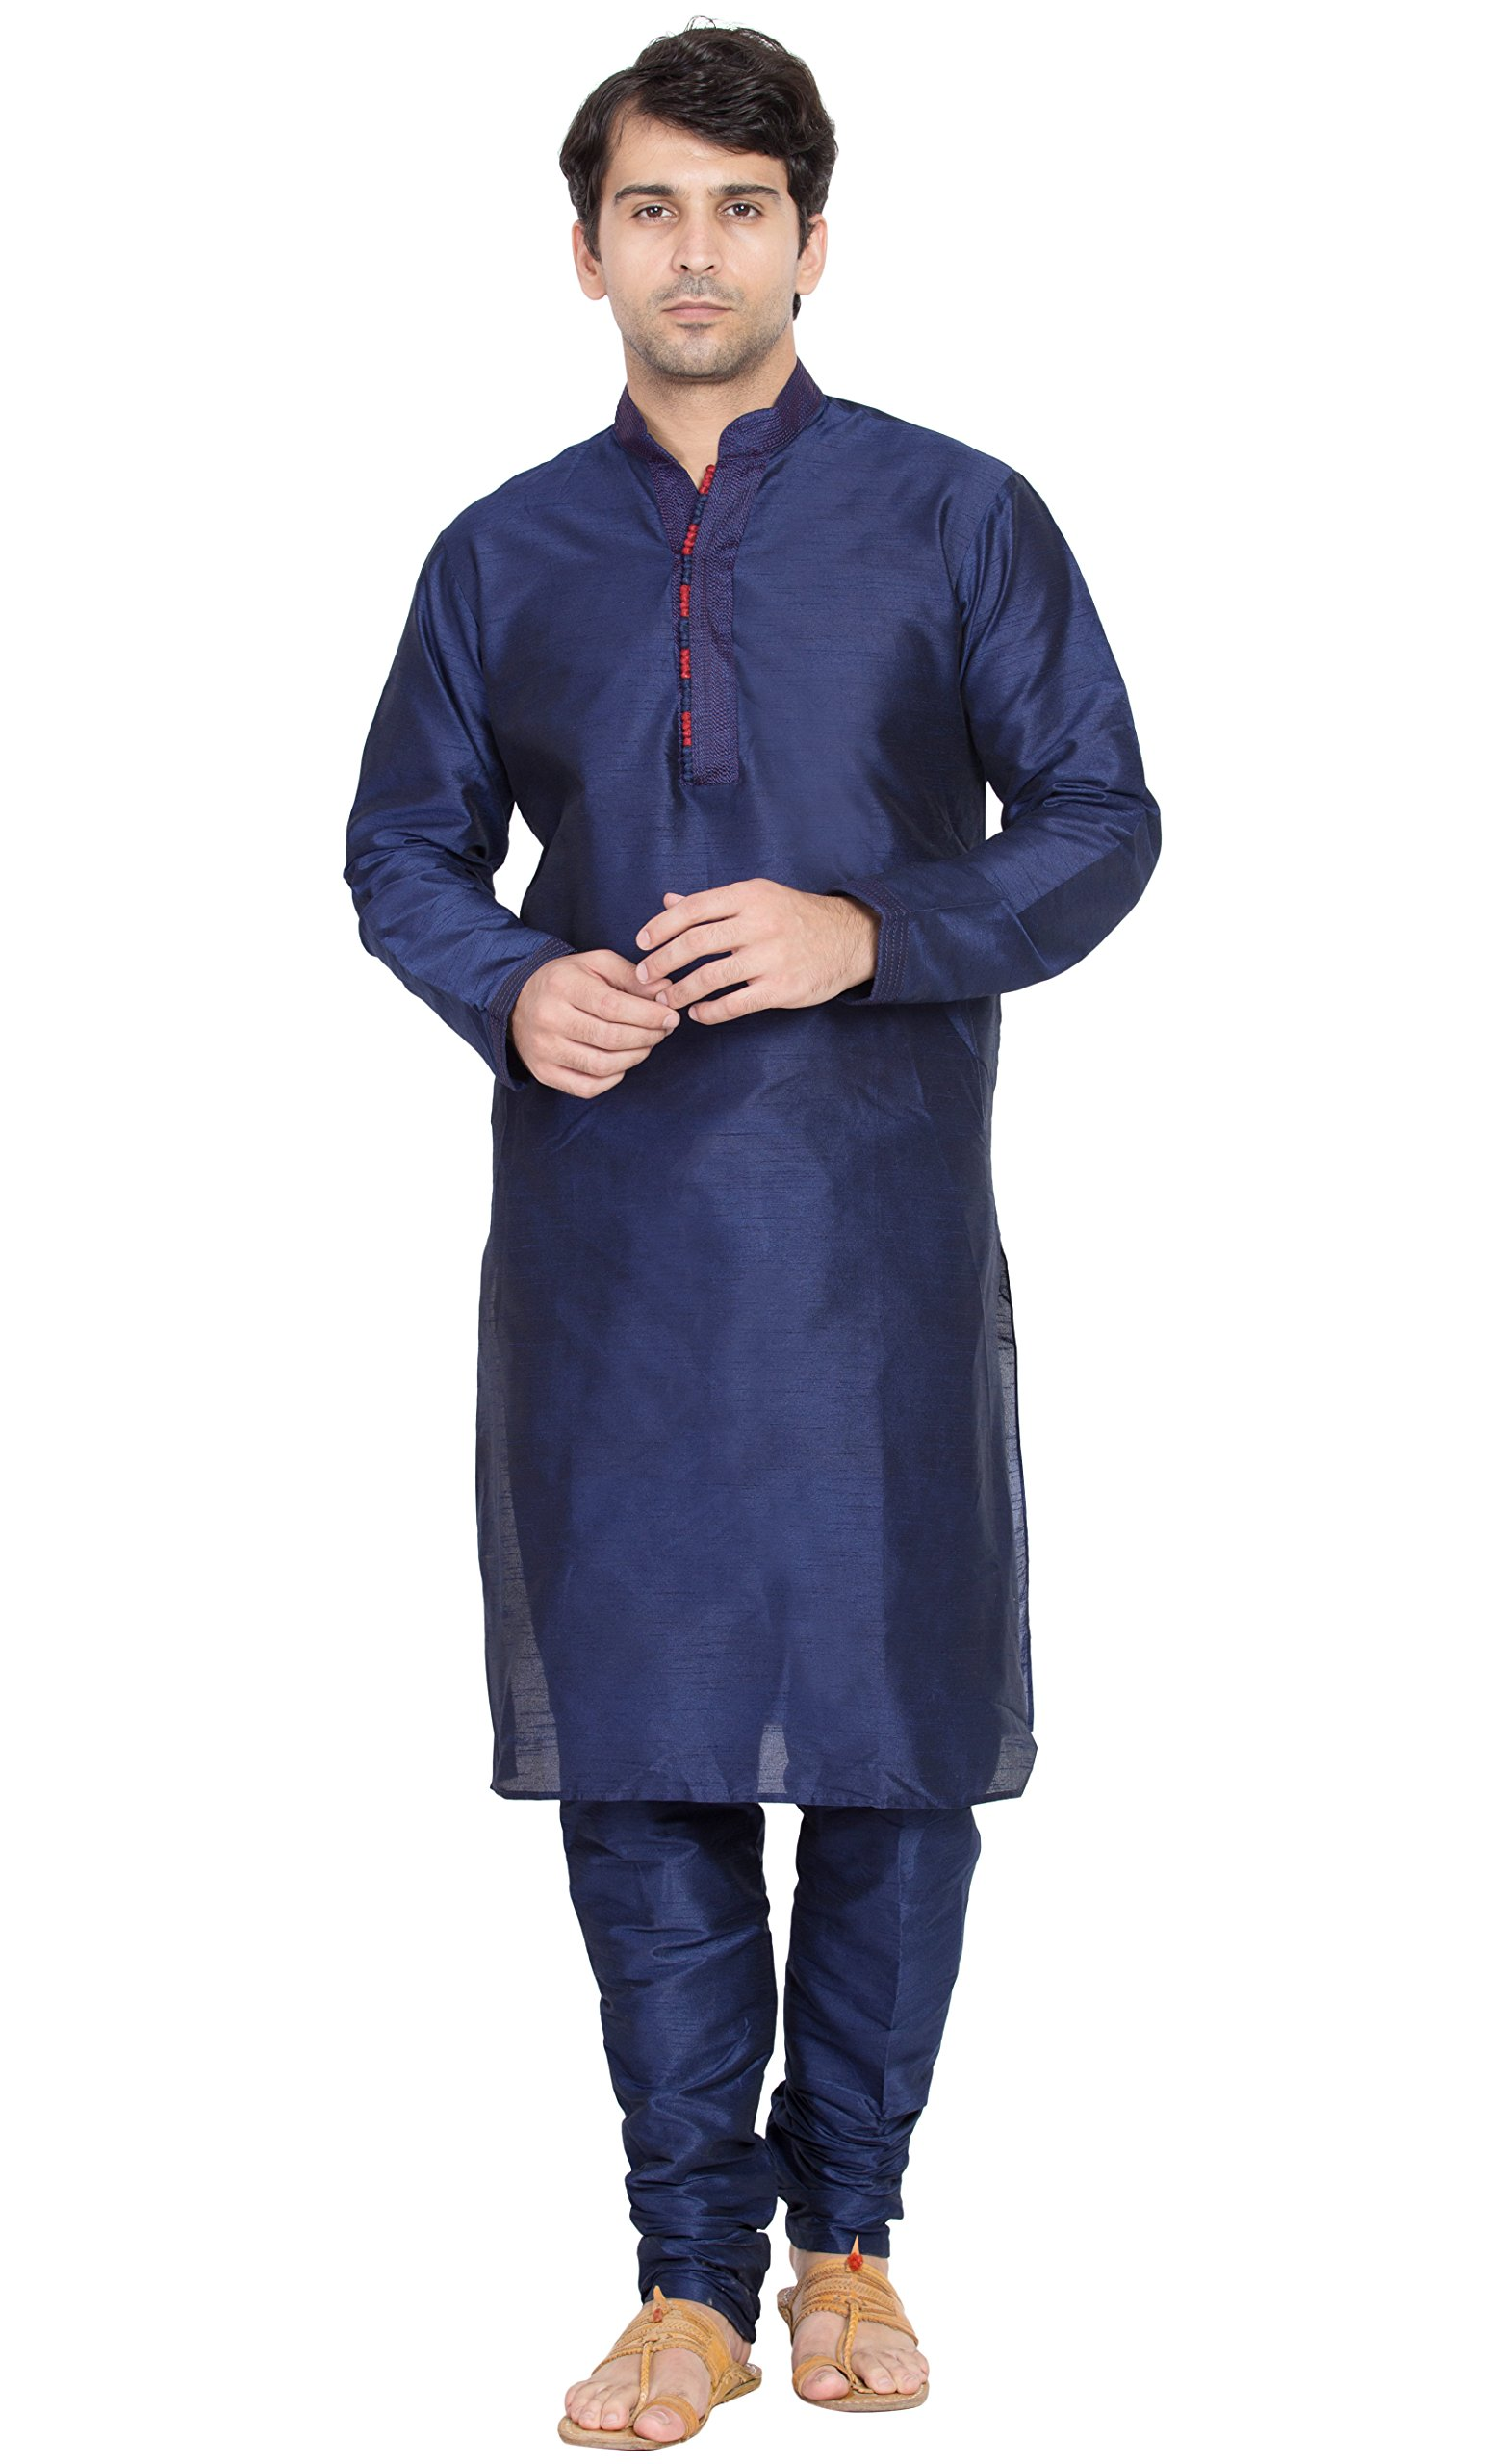 Kurta Pajama India Wear Men Salwar Kameez Party Wear Wedding Long Sleeve Dress -XL